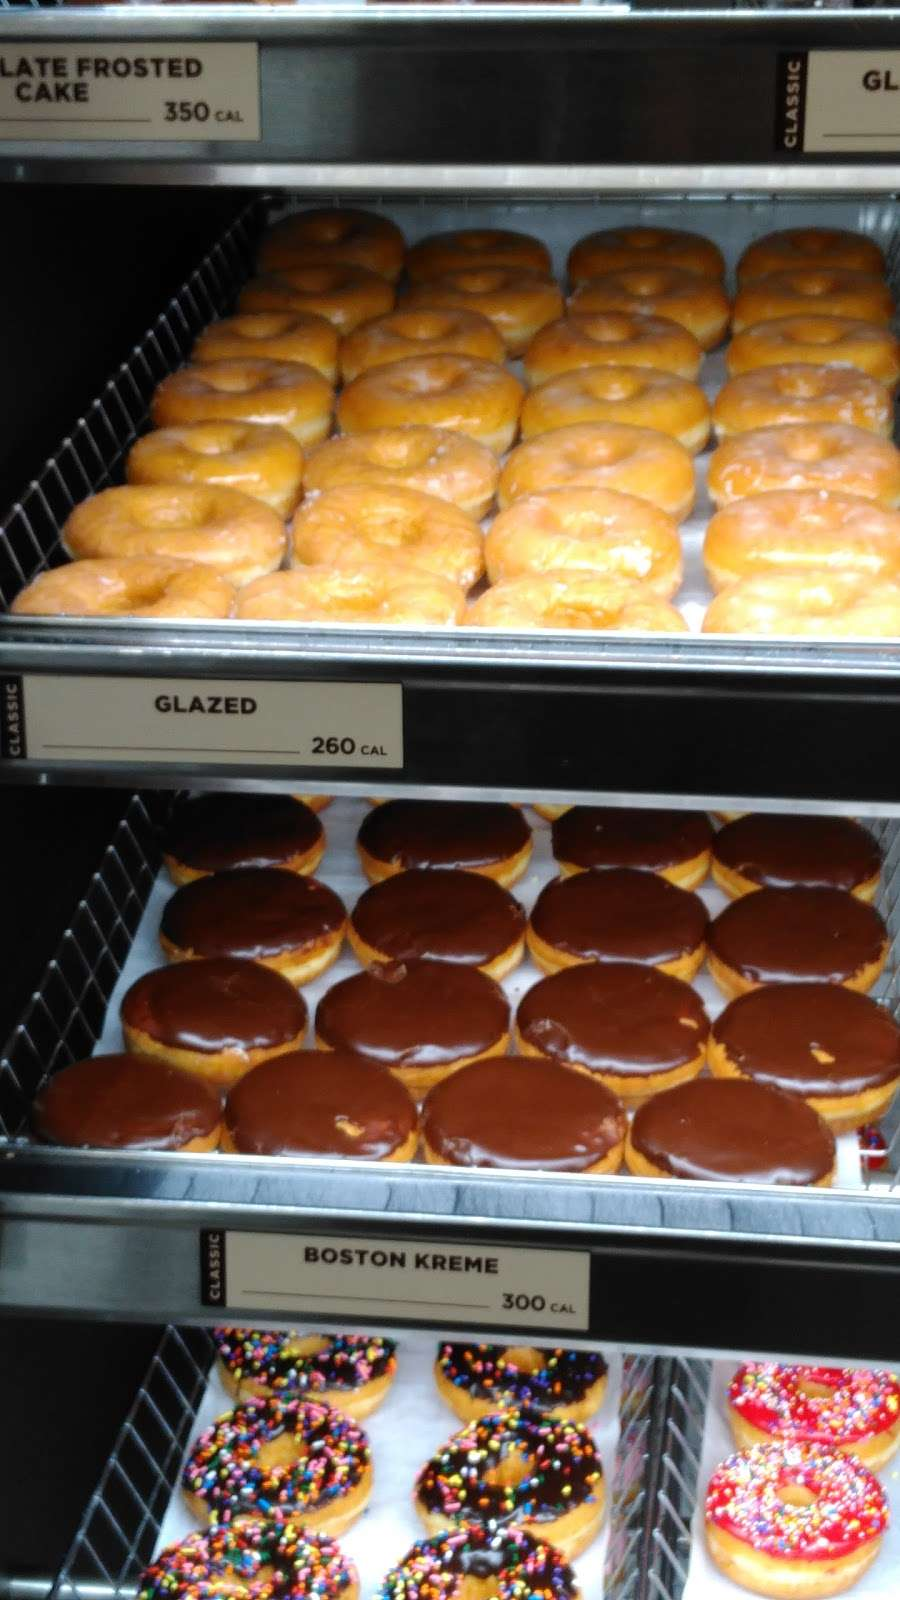 Dunkin Donuts - cafe  | Photo 5 of 10 | Address: 7410 Kennedy Ave, Hammond, IN 46323, USA | Phone: (219) 803-6461